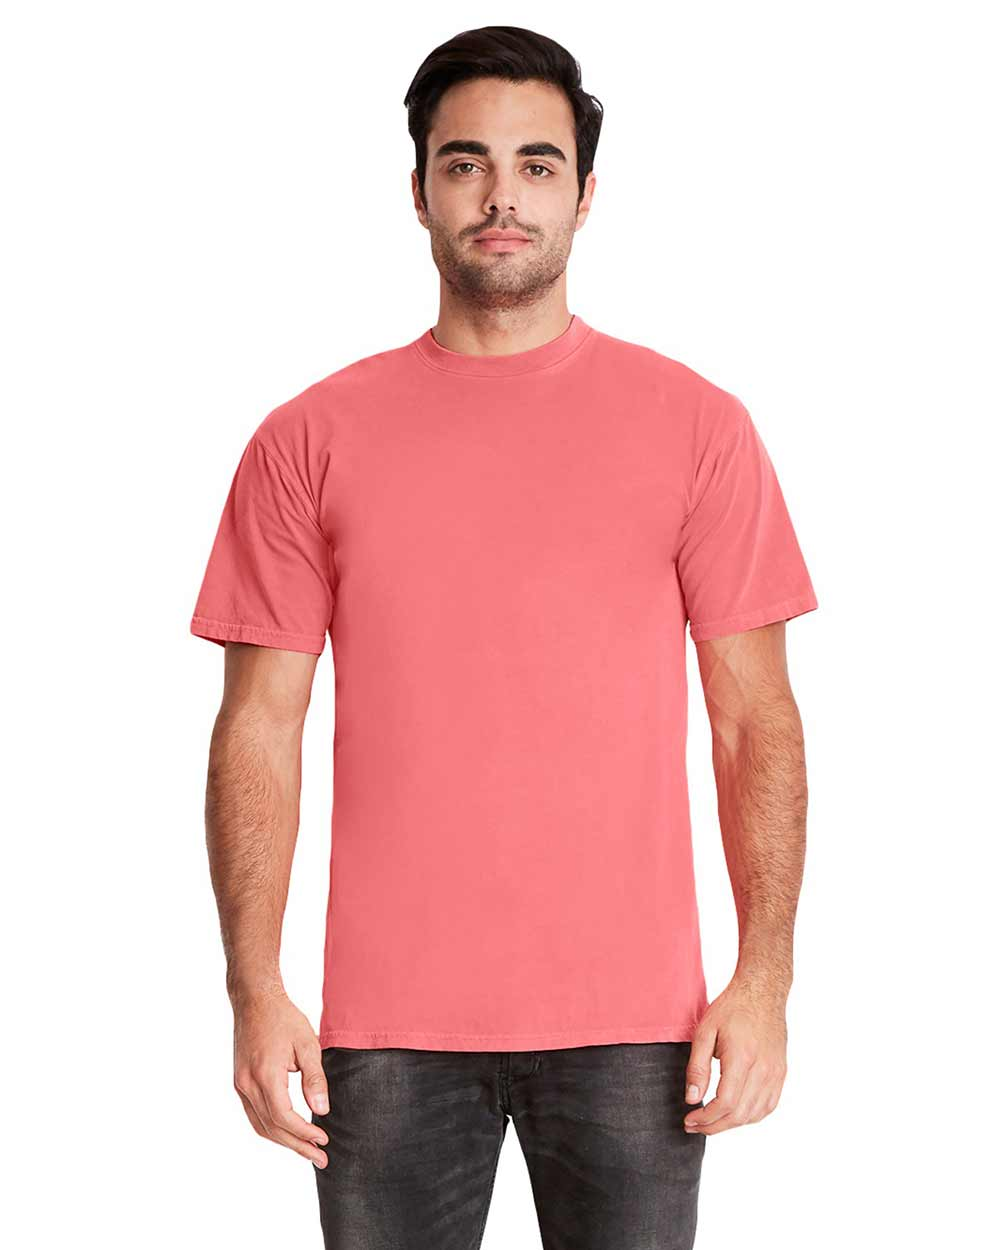 Next Level 7410 - Adult Inspired Dye Crew T-Shirt